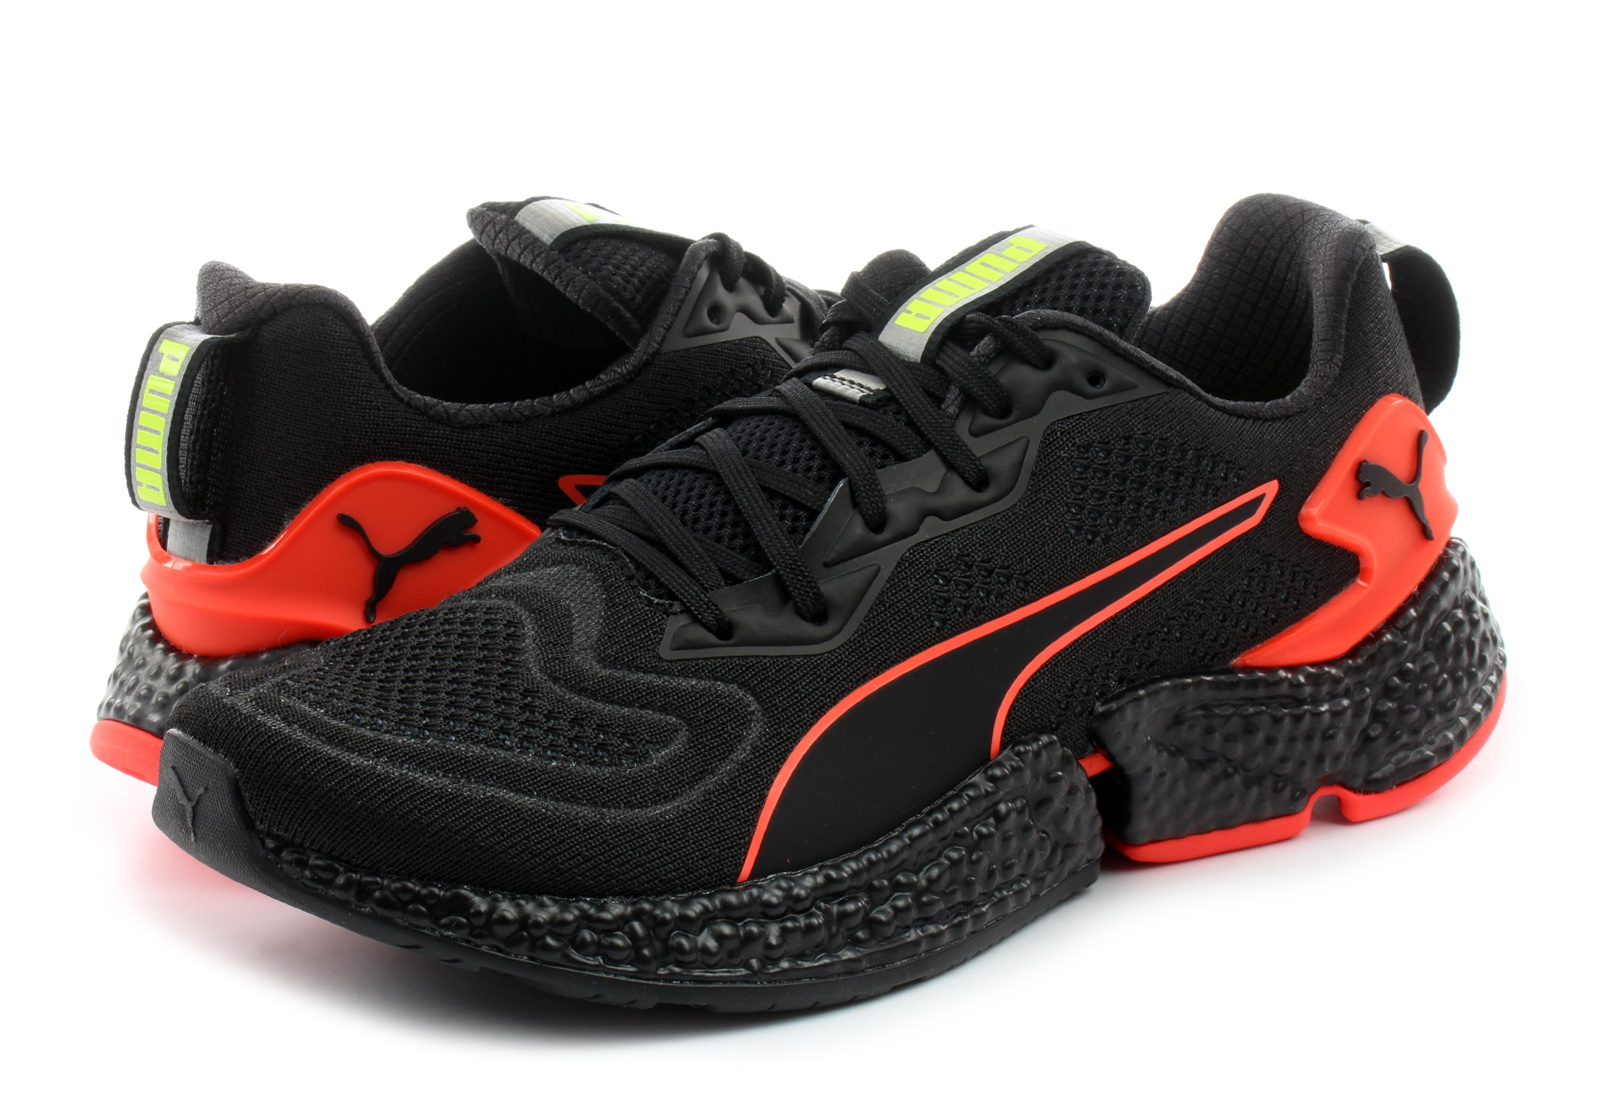 Puma Speed Orbiter | Supportive Running Shoes 2019